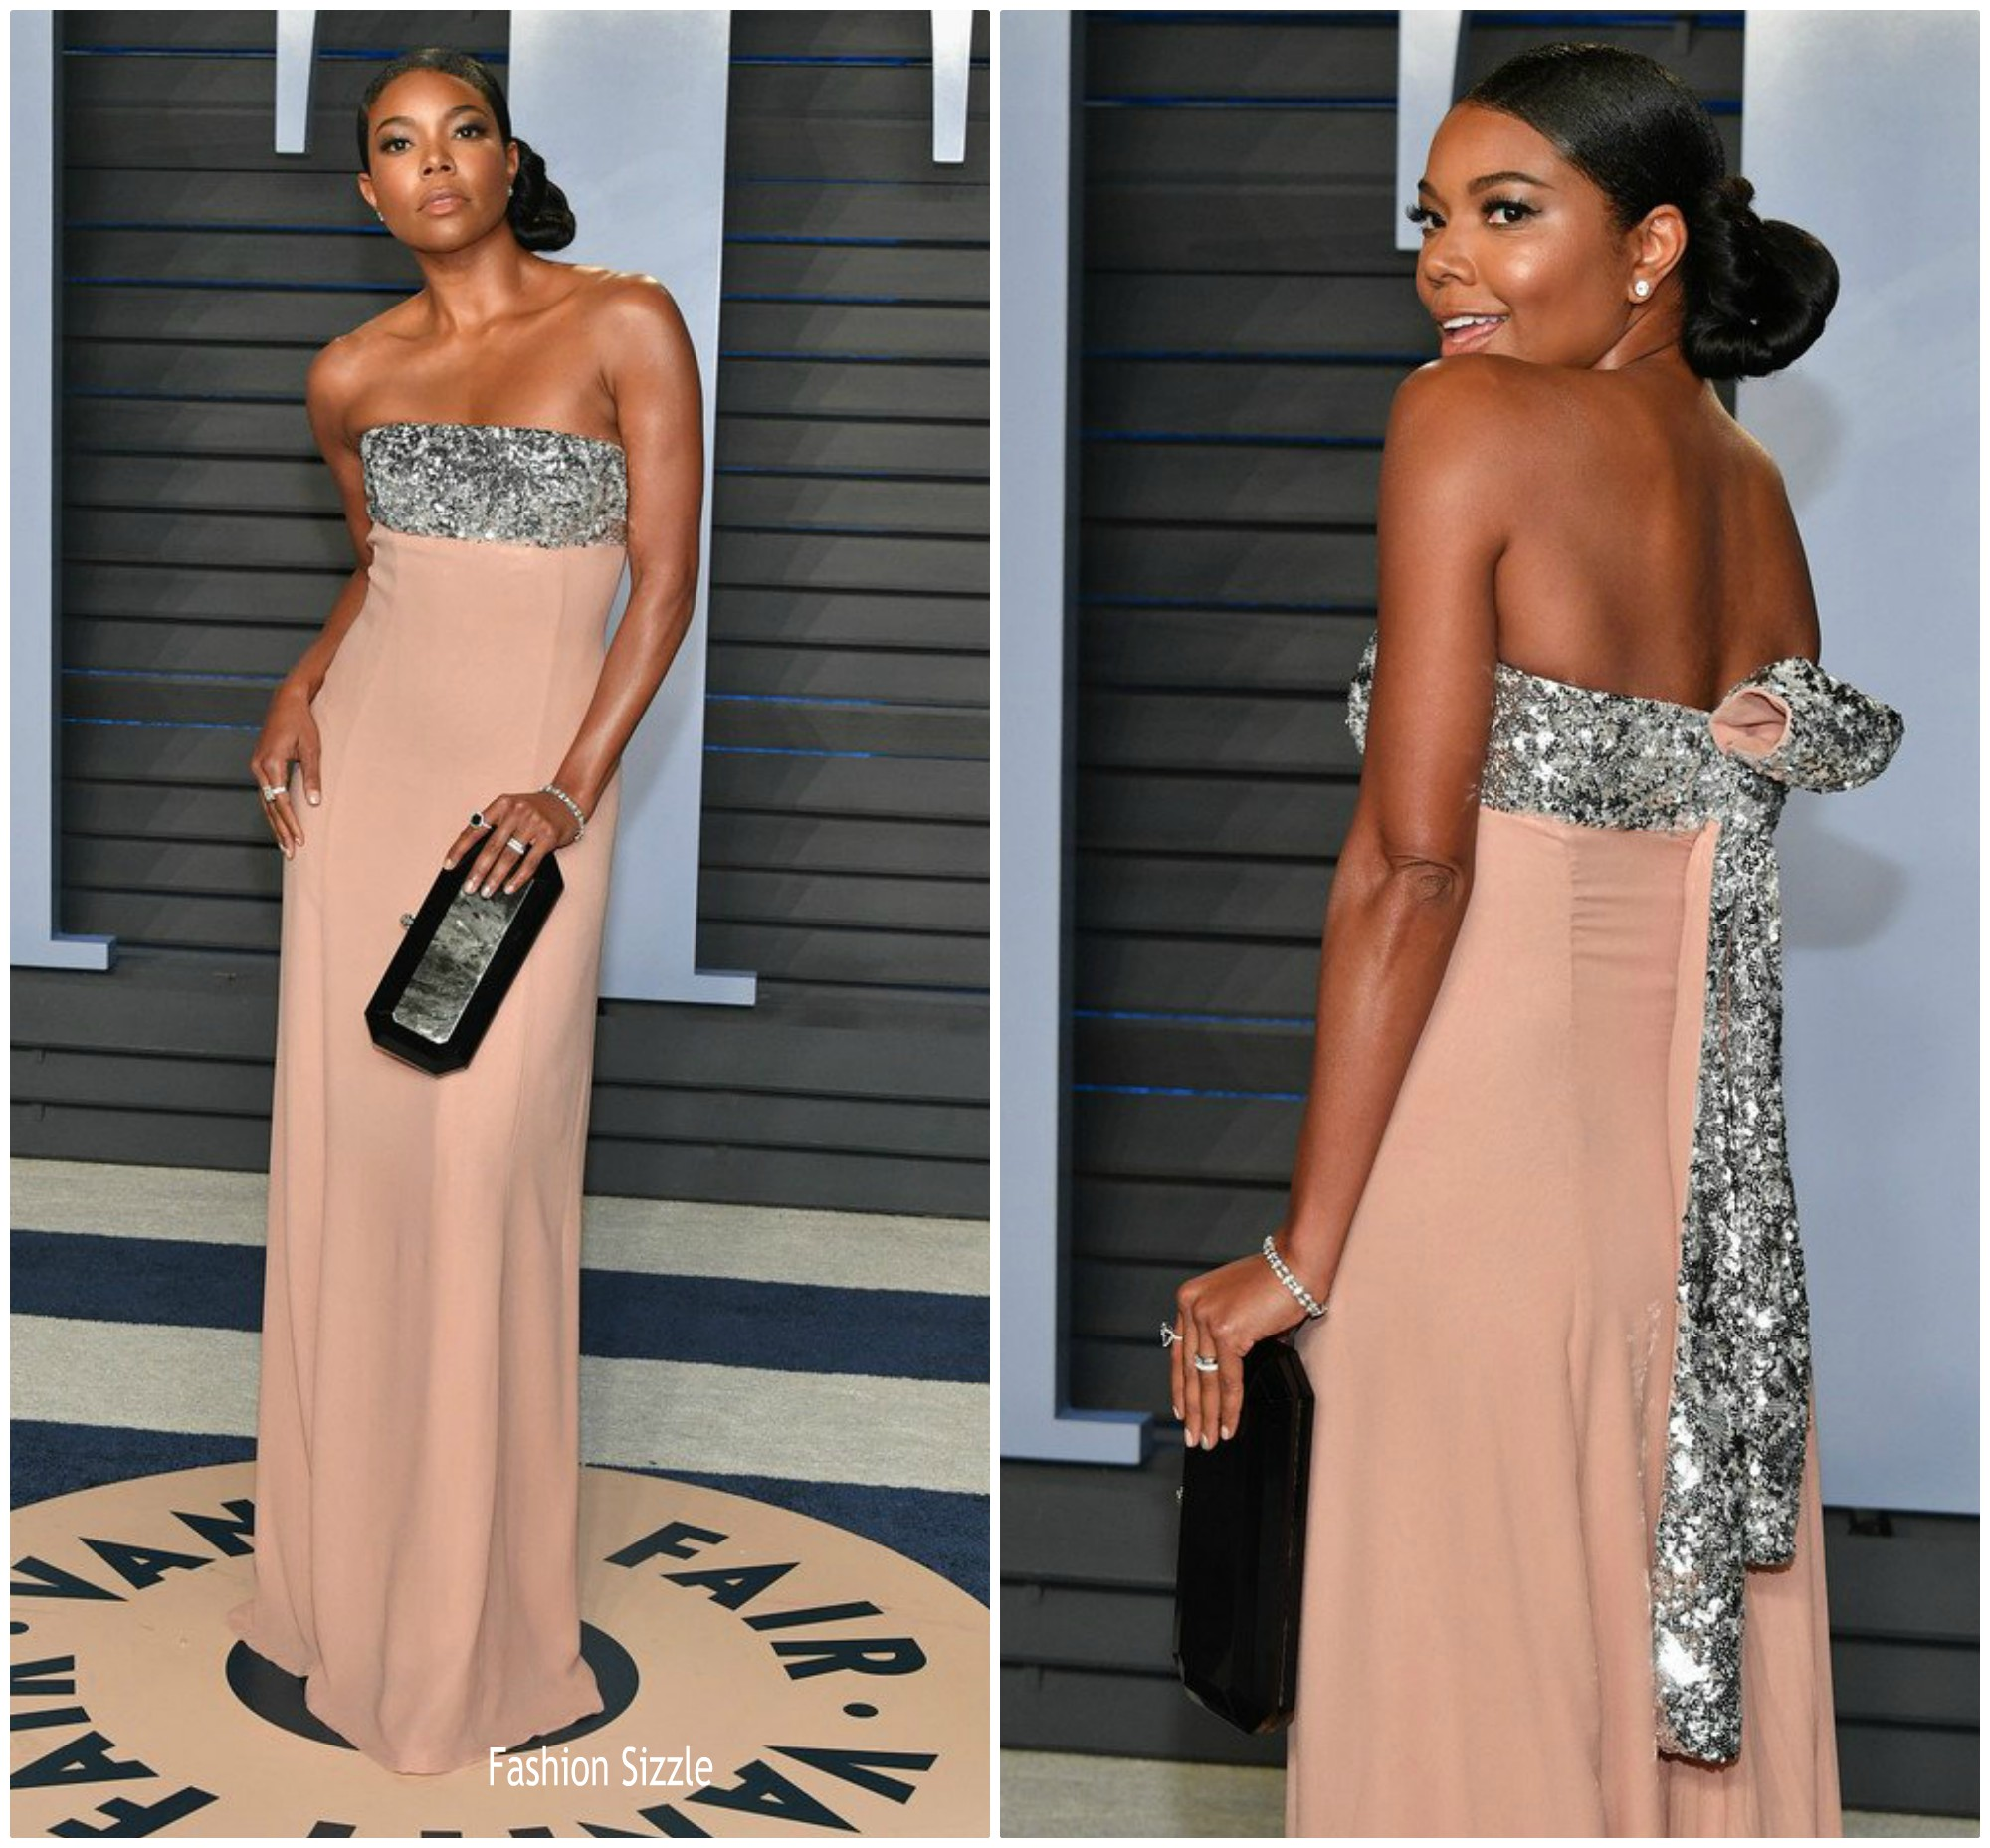 gabrielle-union-in-prada-2018-vanity-fair-oscar-party